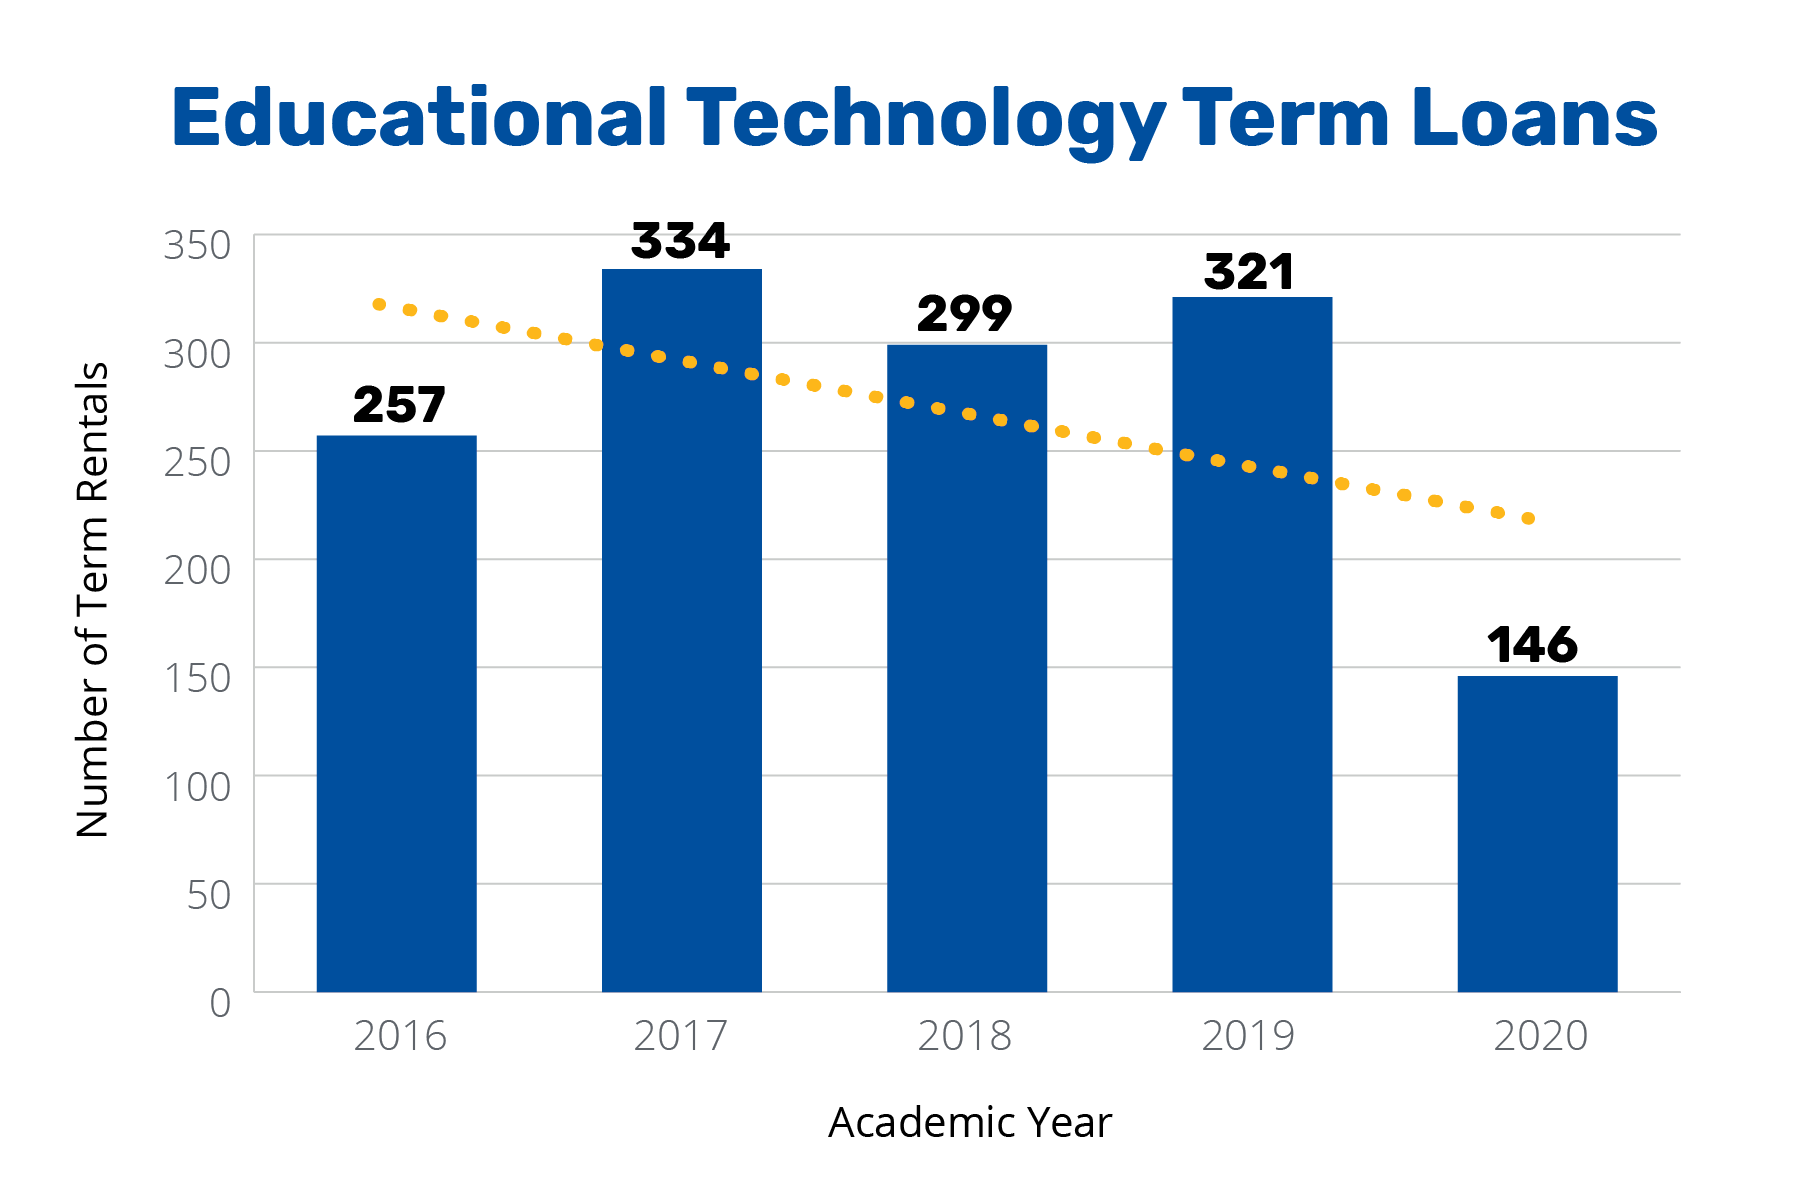 Annual Report 2020 - Educational Technology Term Loans